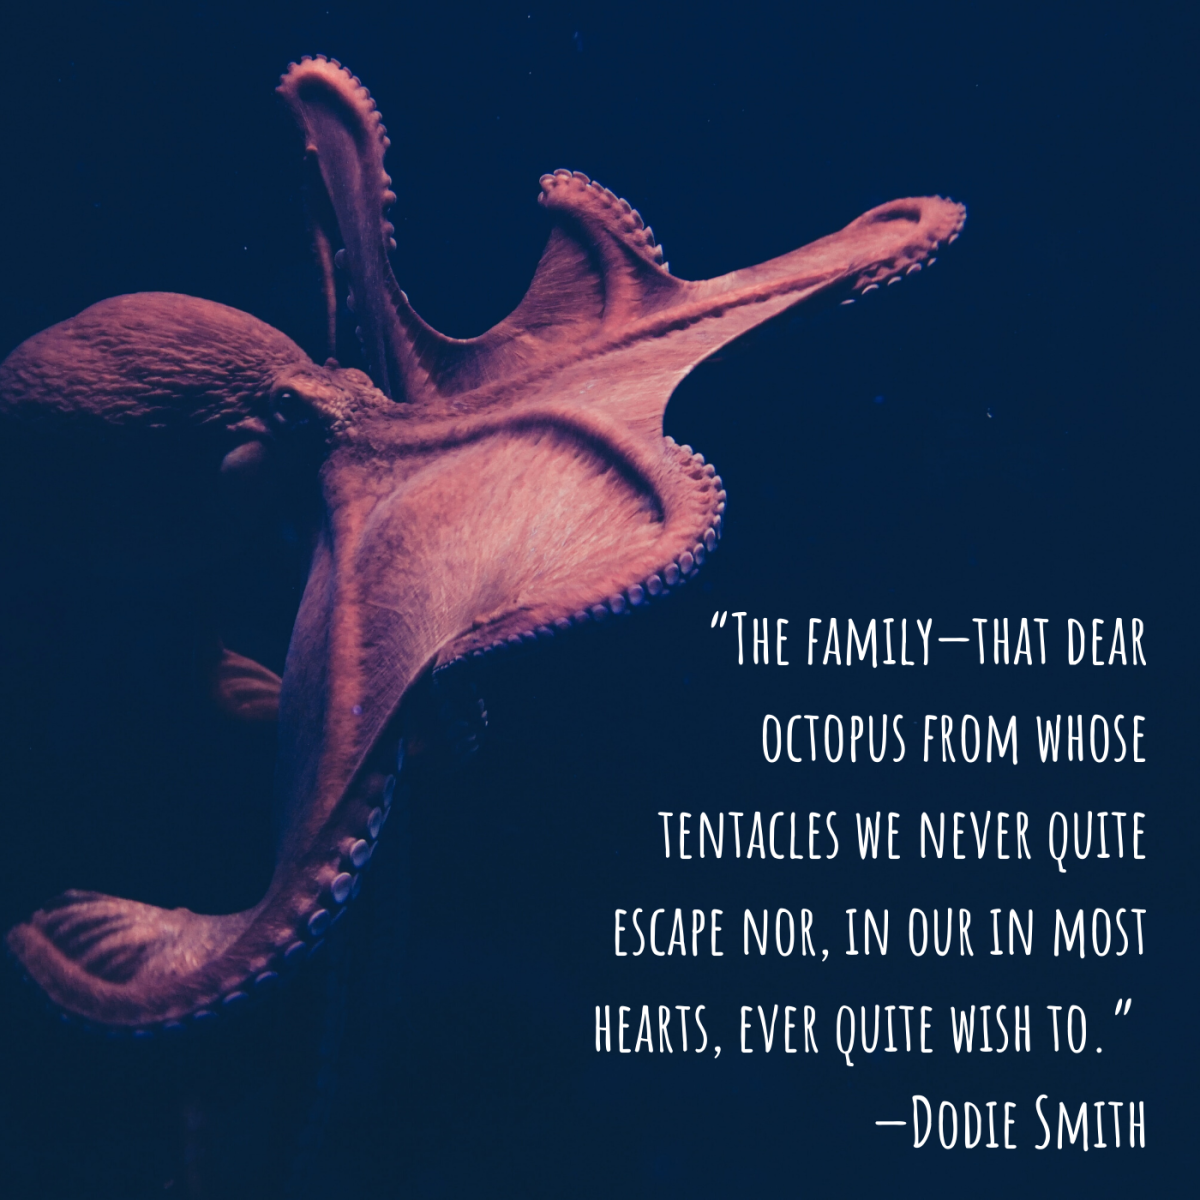 """""""The family—that dear octopus from whose tentacles we never quite escape nor, in our inmost hearts, ever quite wish to."""" —Dodie Smith"""